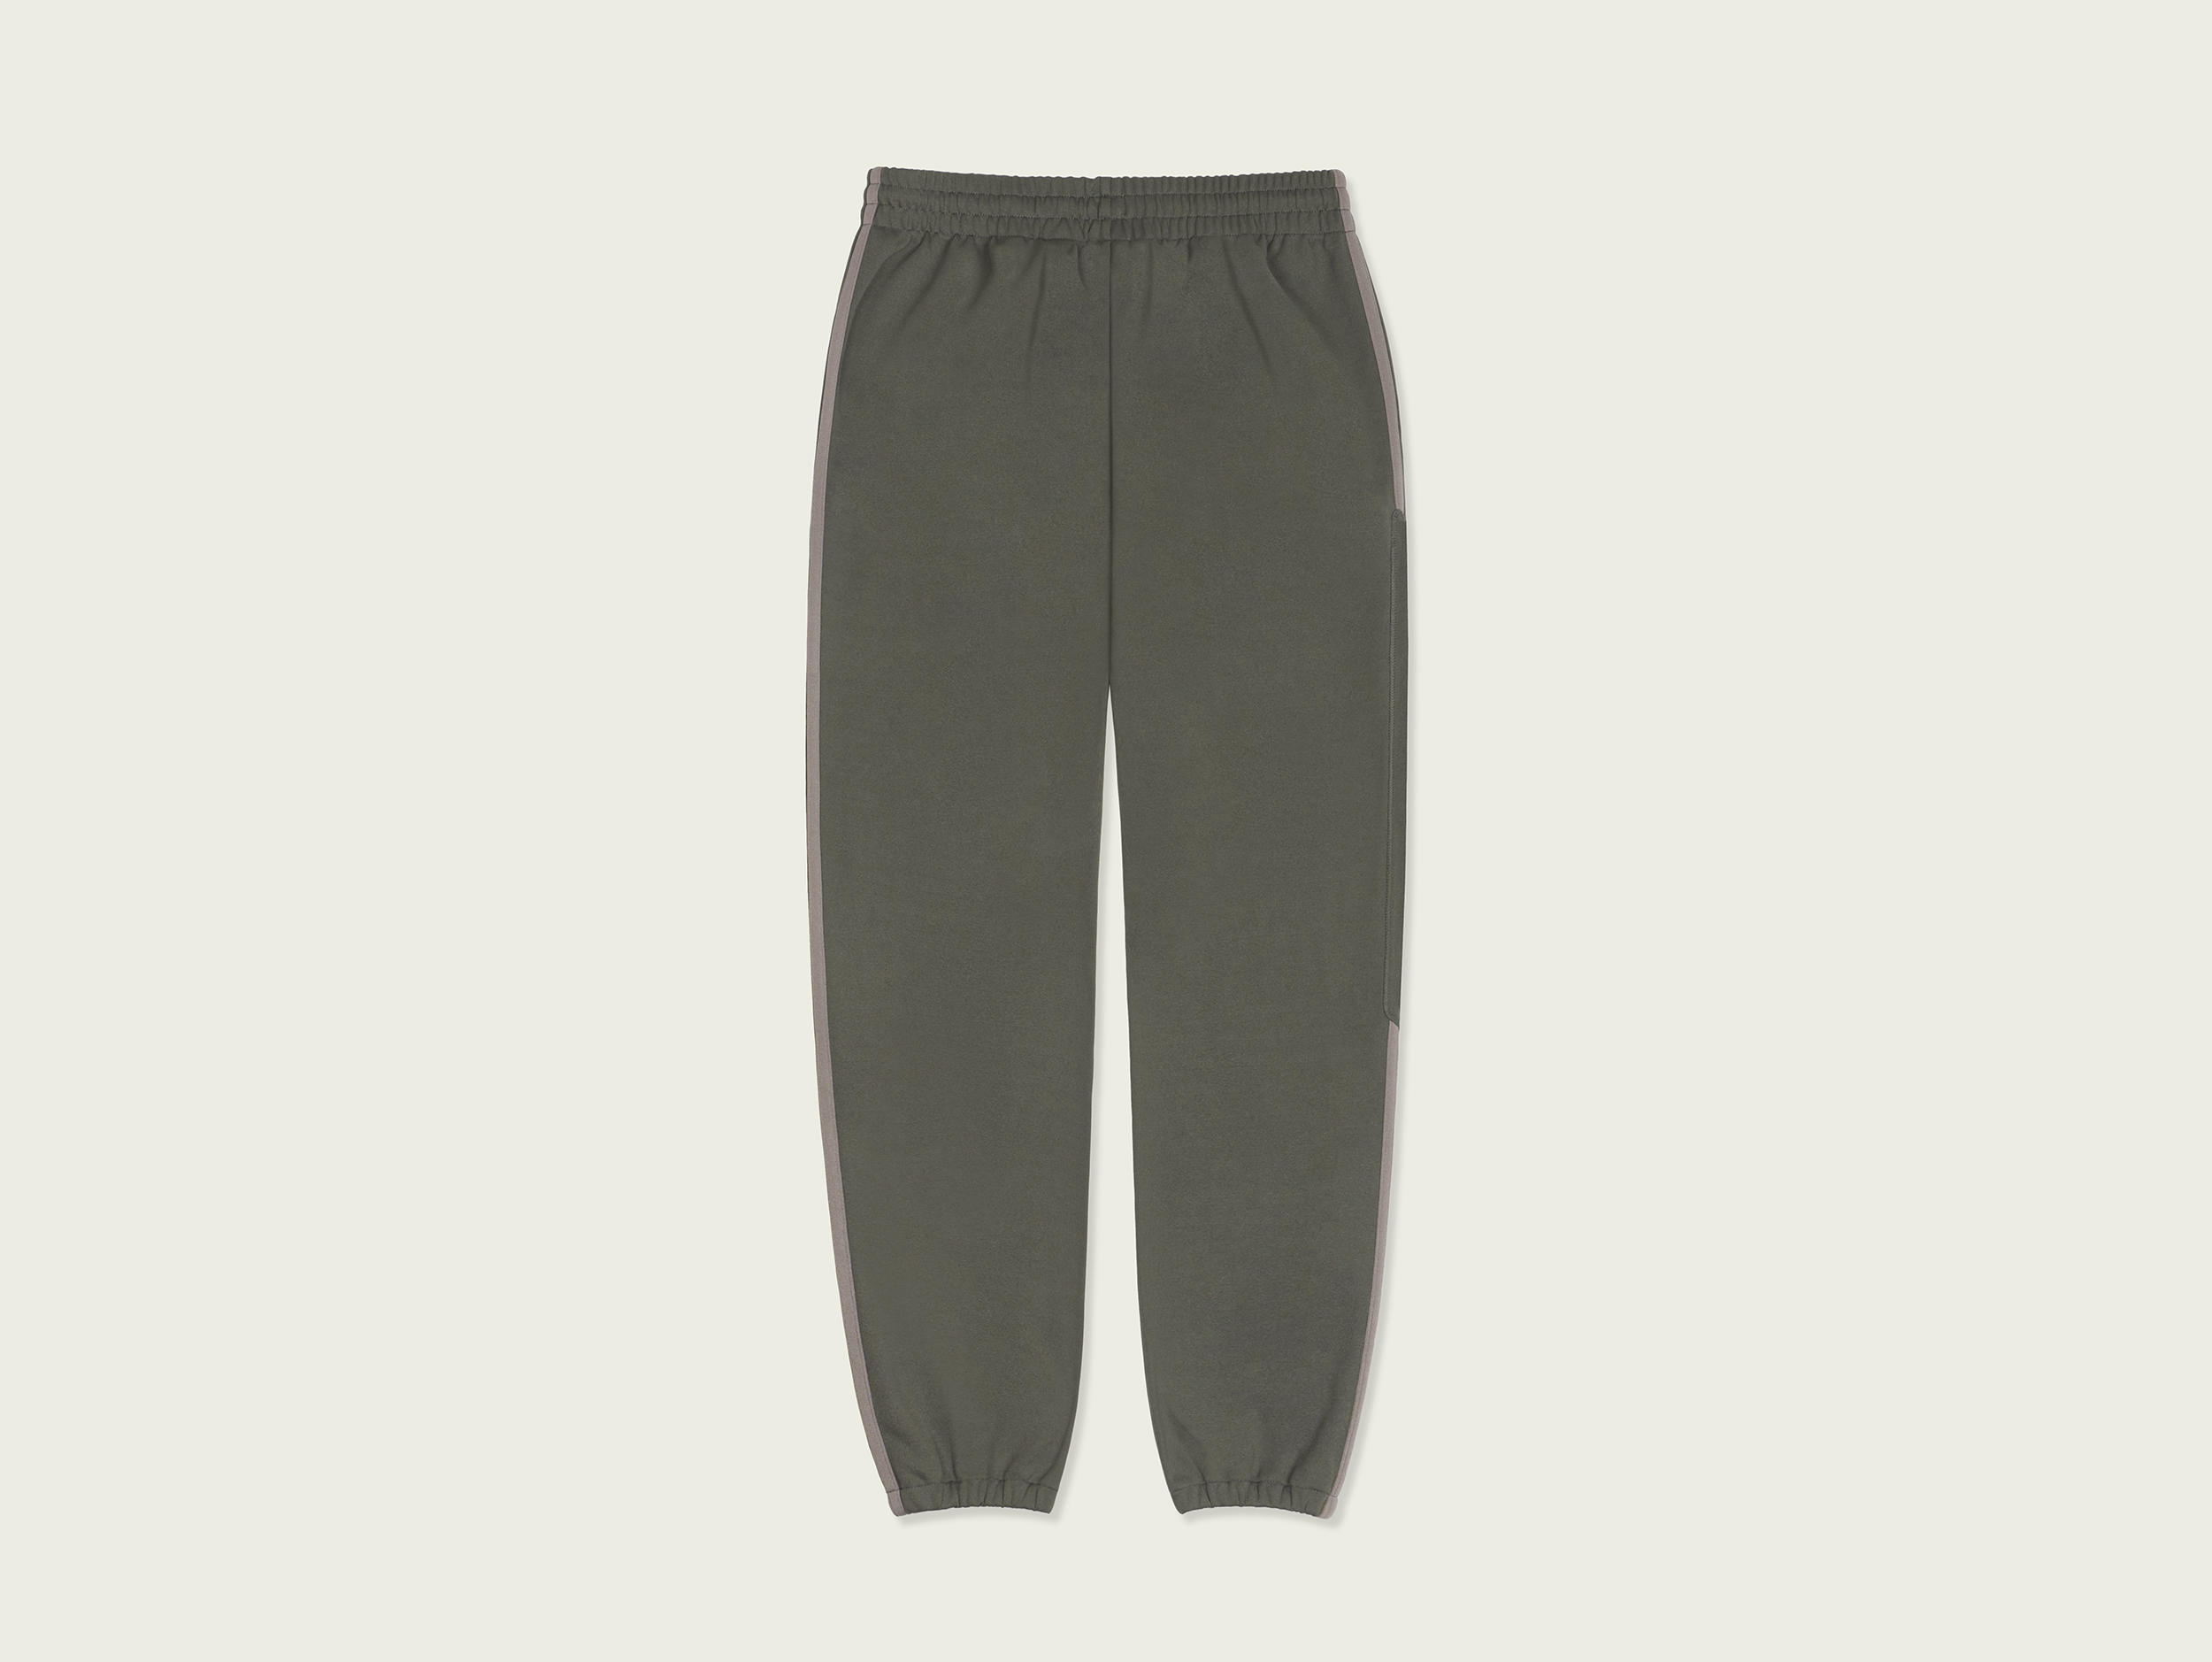 f4b51c02 More Colours Of The Calabasas Track Pants Arrive - MASSES